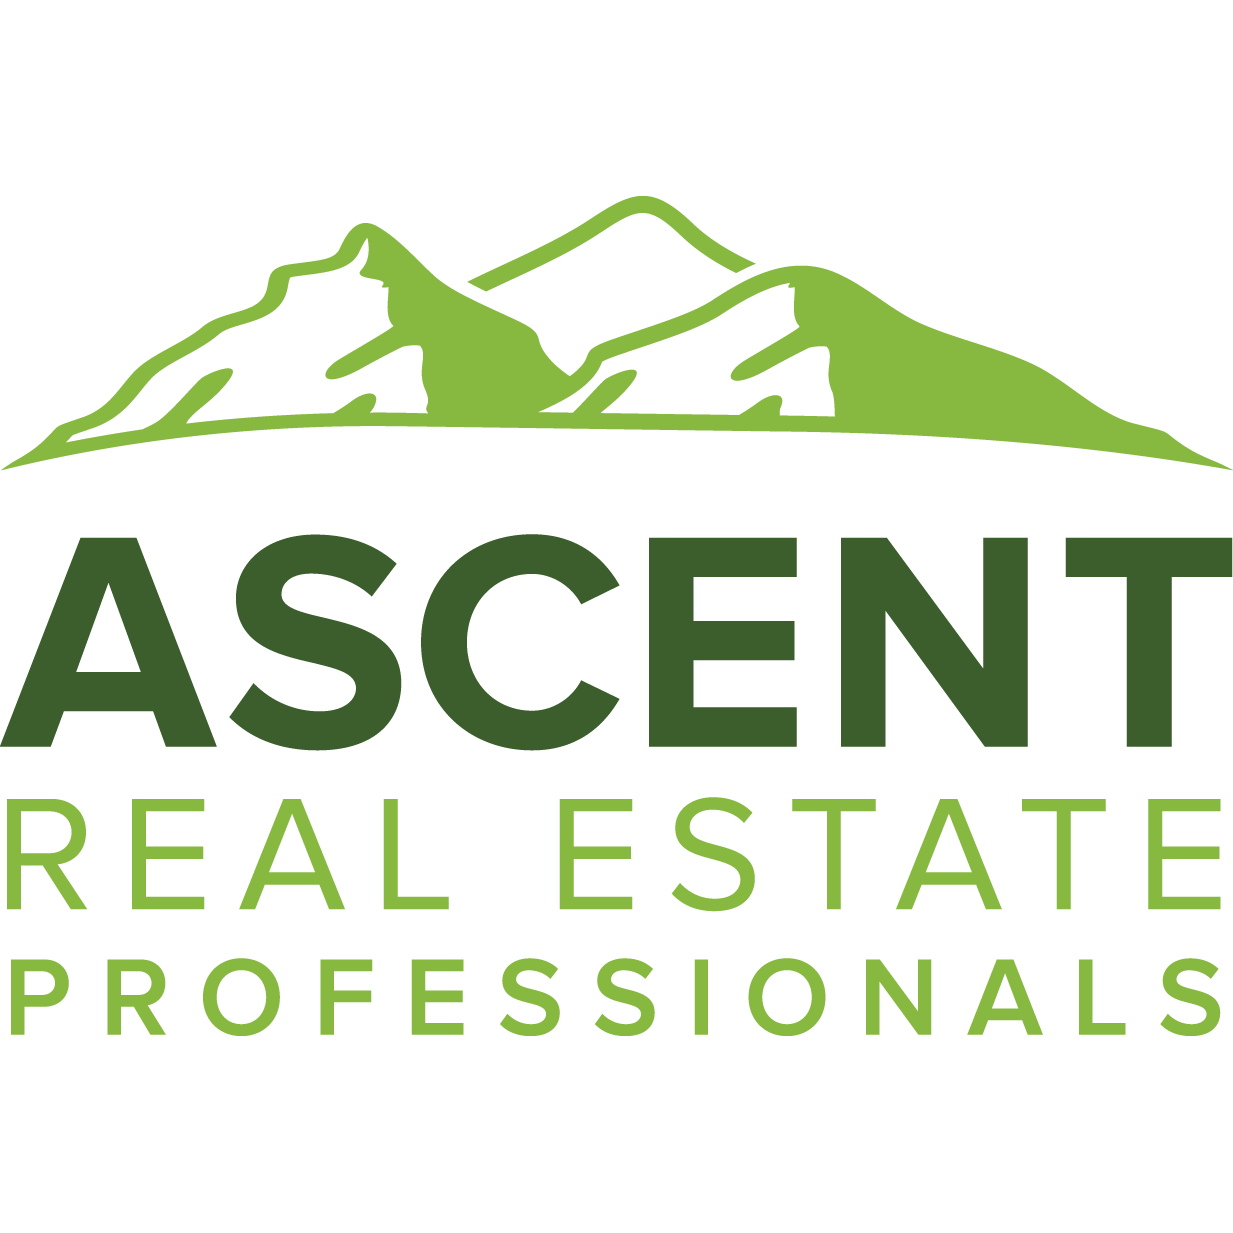 Ascent Real Estate Professionals